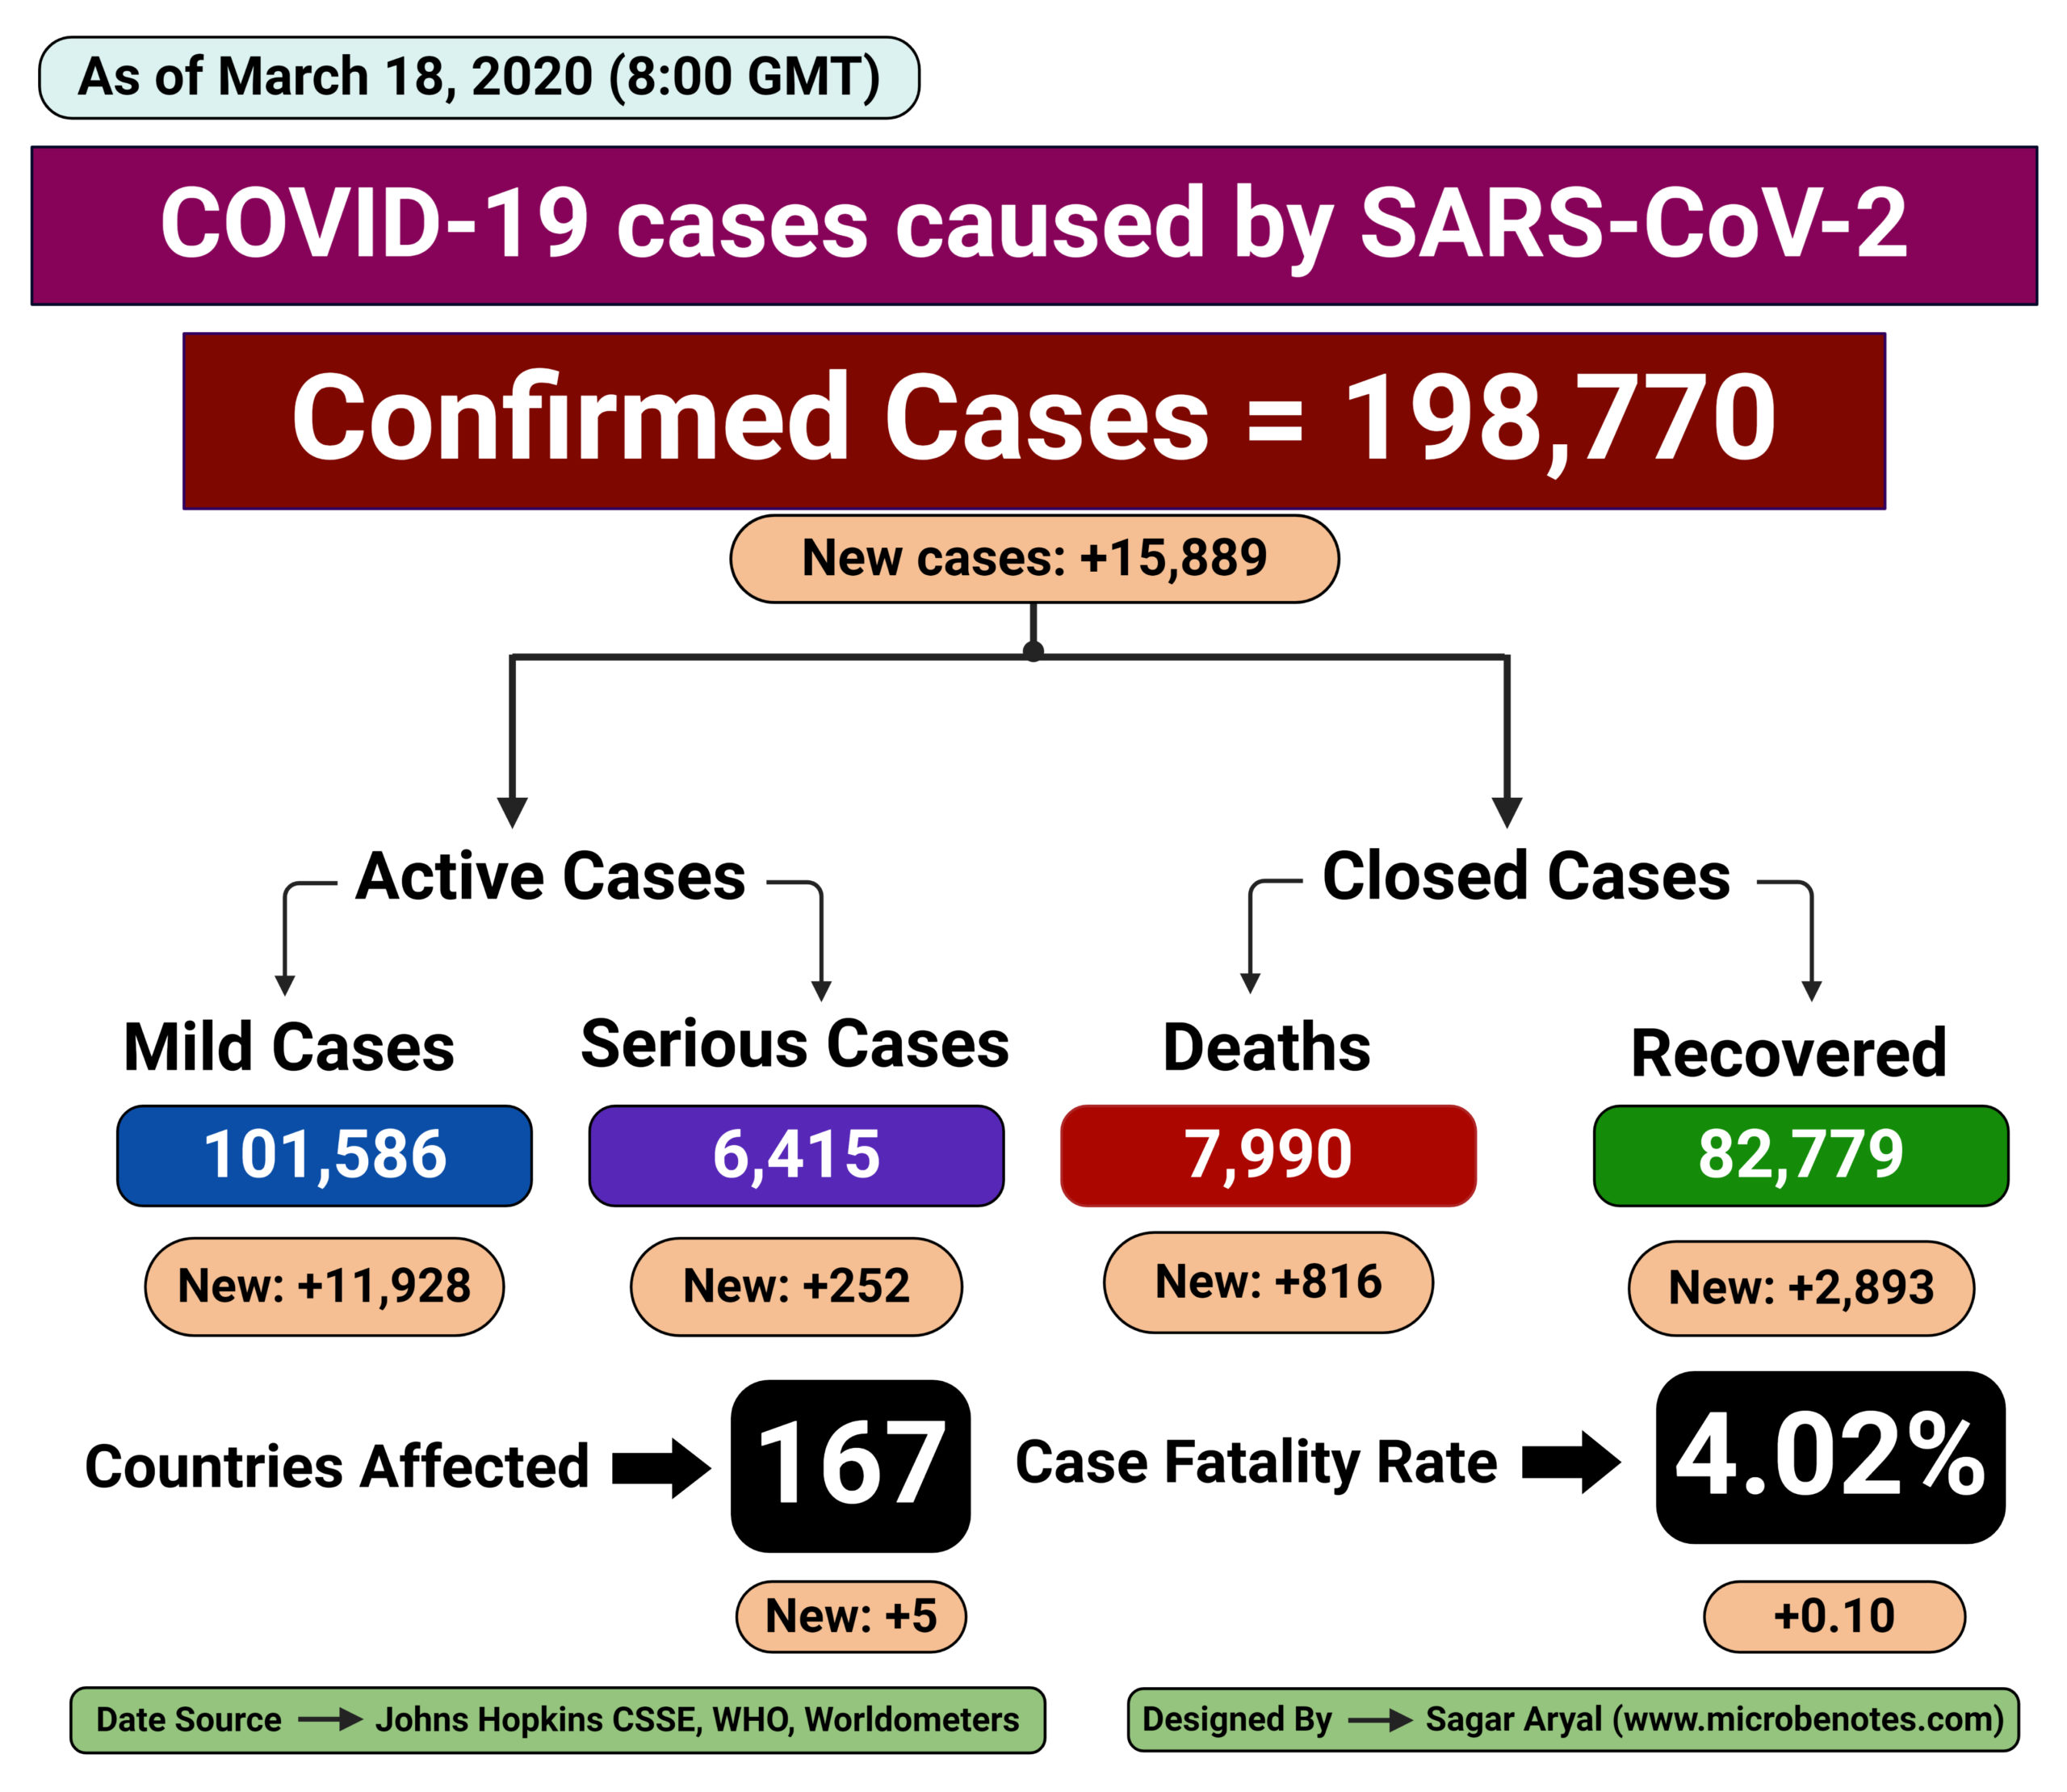 Epidemiology of COVID-19 caused by SARS-CoV-2 as of March 18, 2020